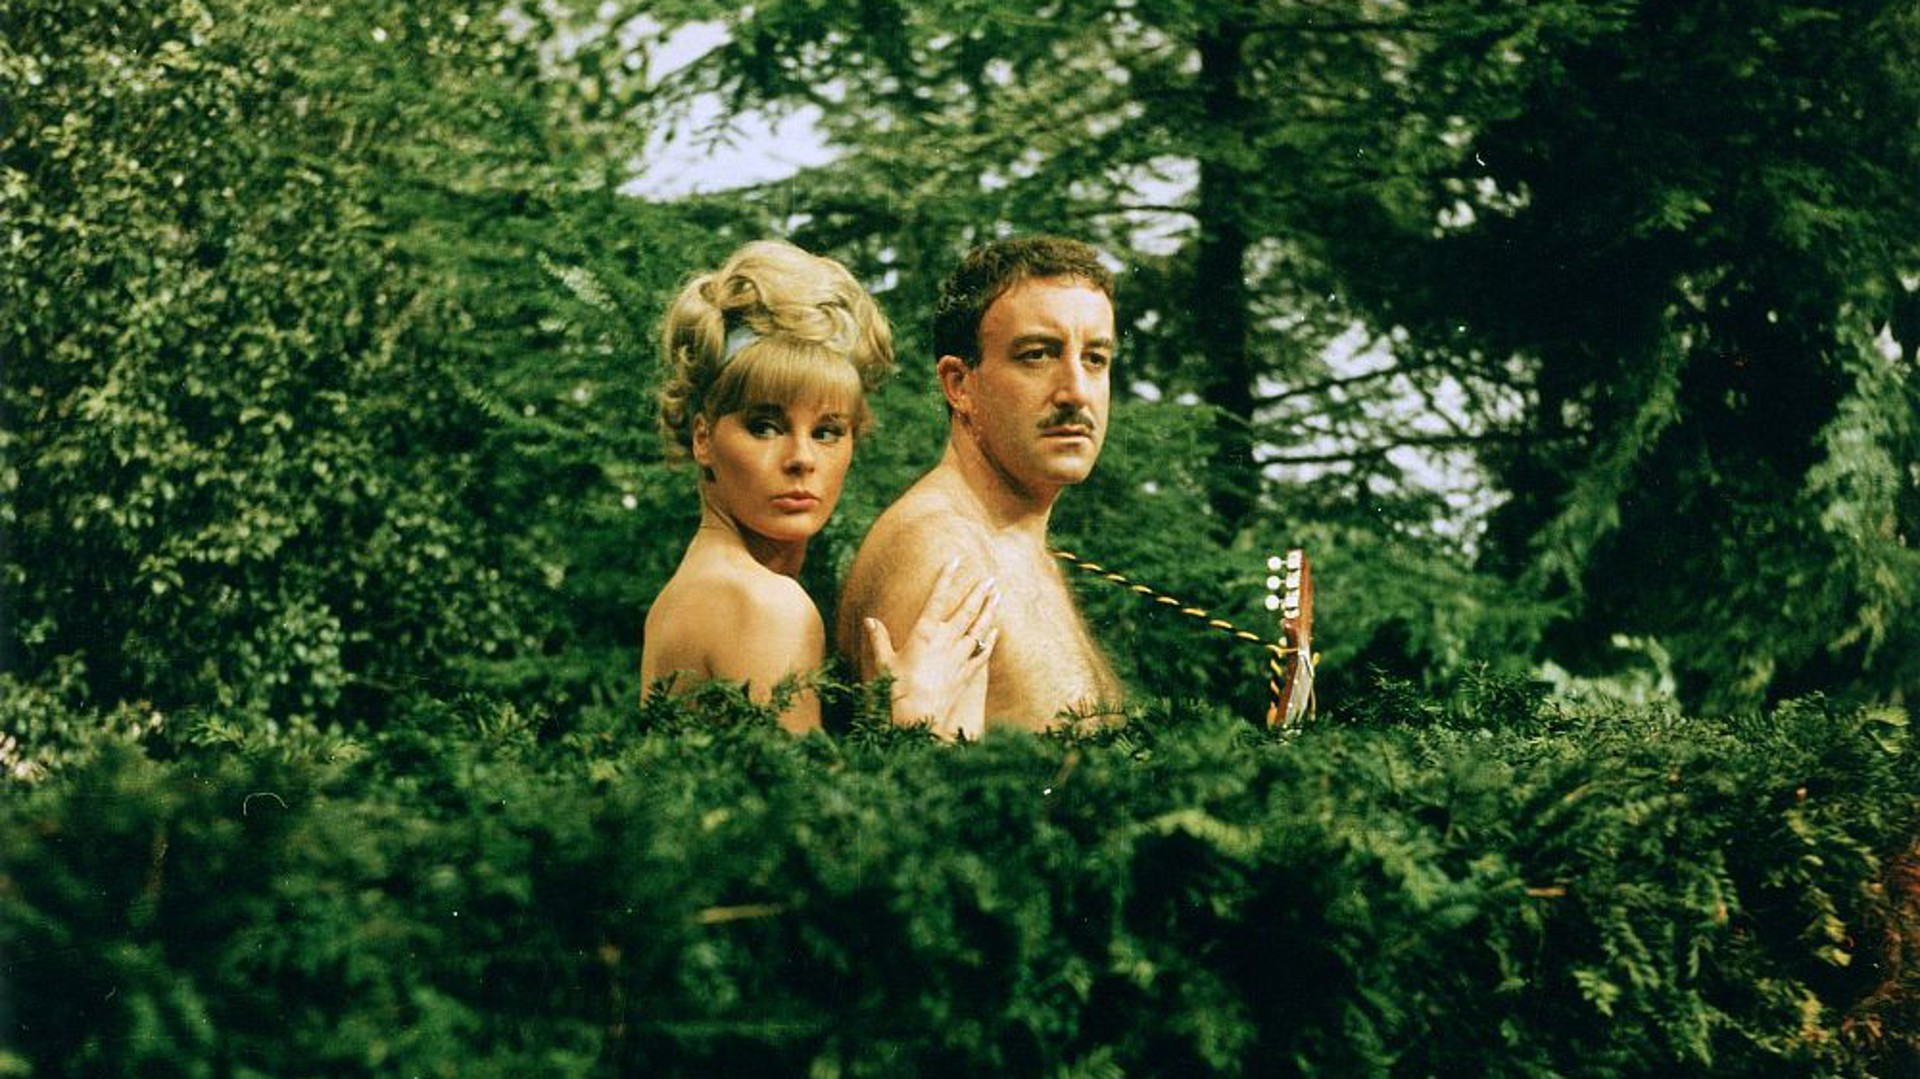 Peter Sellers and Elke Sommer explore a nudist colony in A Shot In The Dark